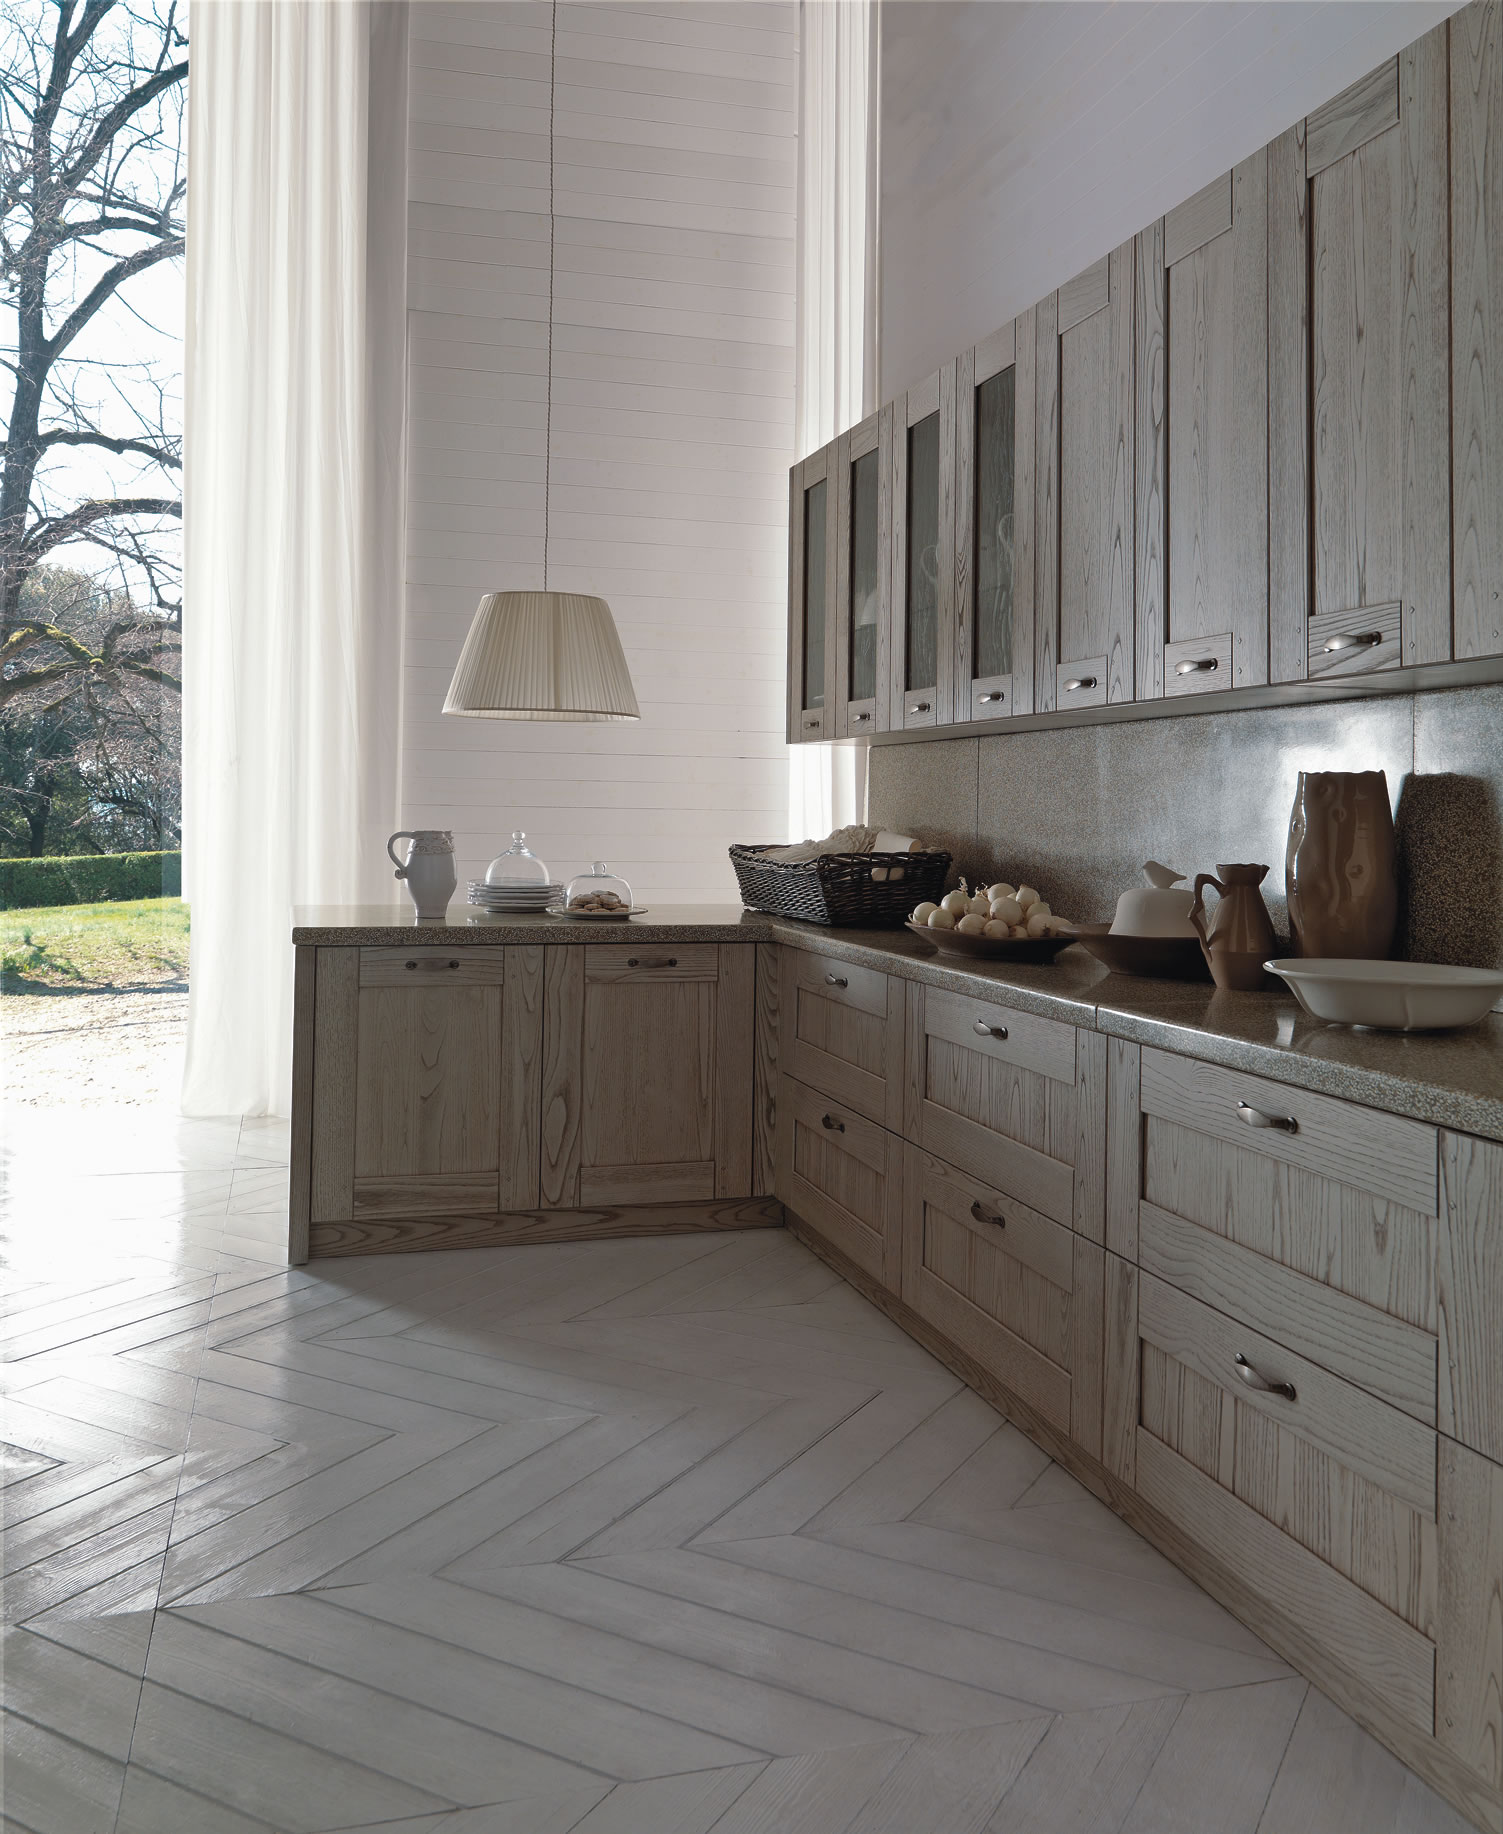 Aurora Cucine Design Cucine Country Chic Cucine In Muratura  Home Design Idea